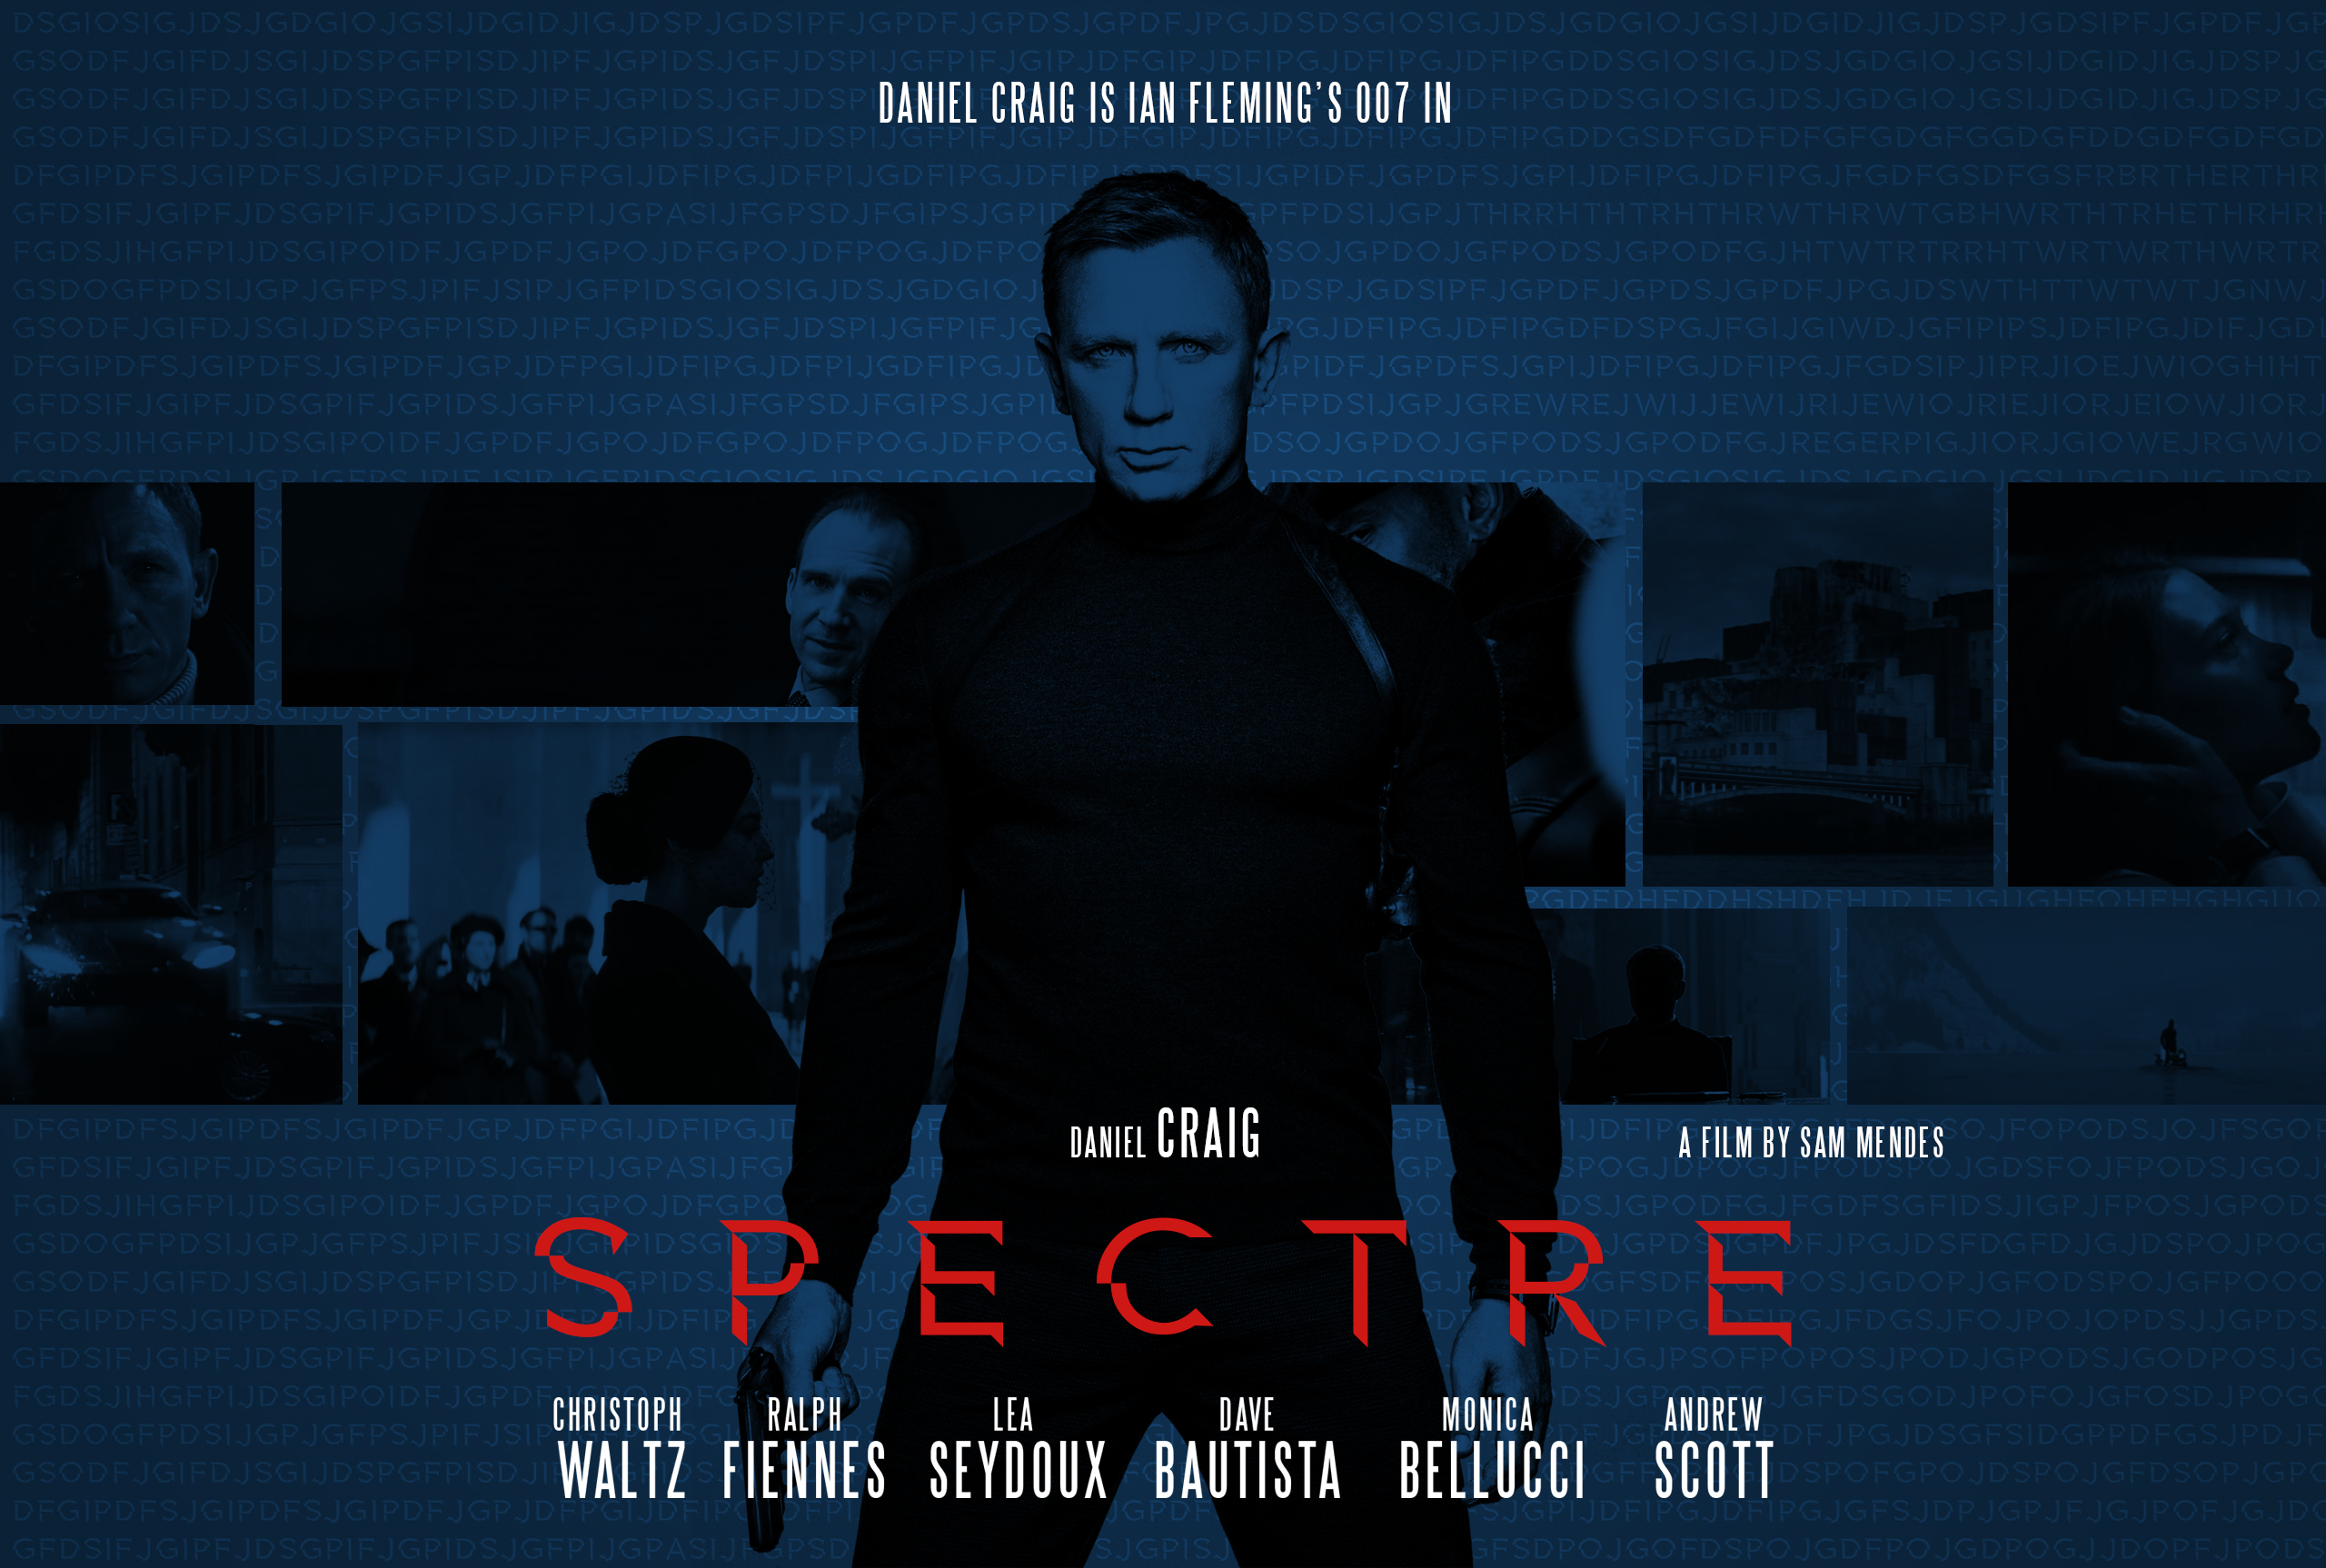 spectre___tinker_tailor_solider_spy_style_by_swannmadeleine-d915uuy.jpg